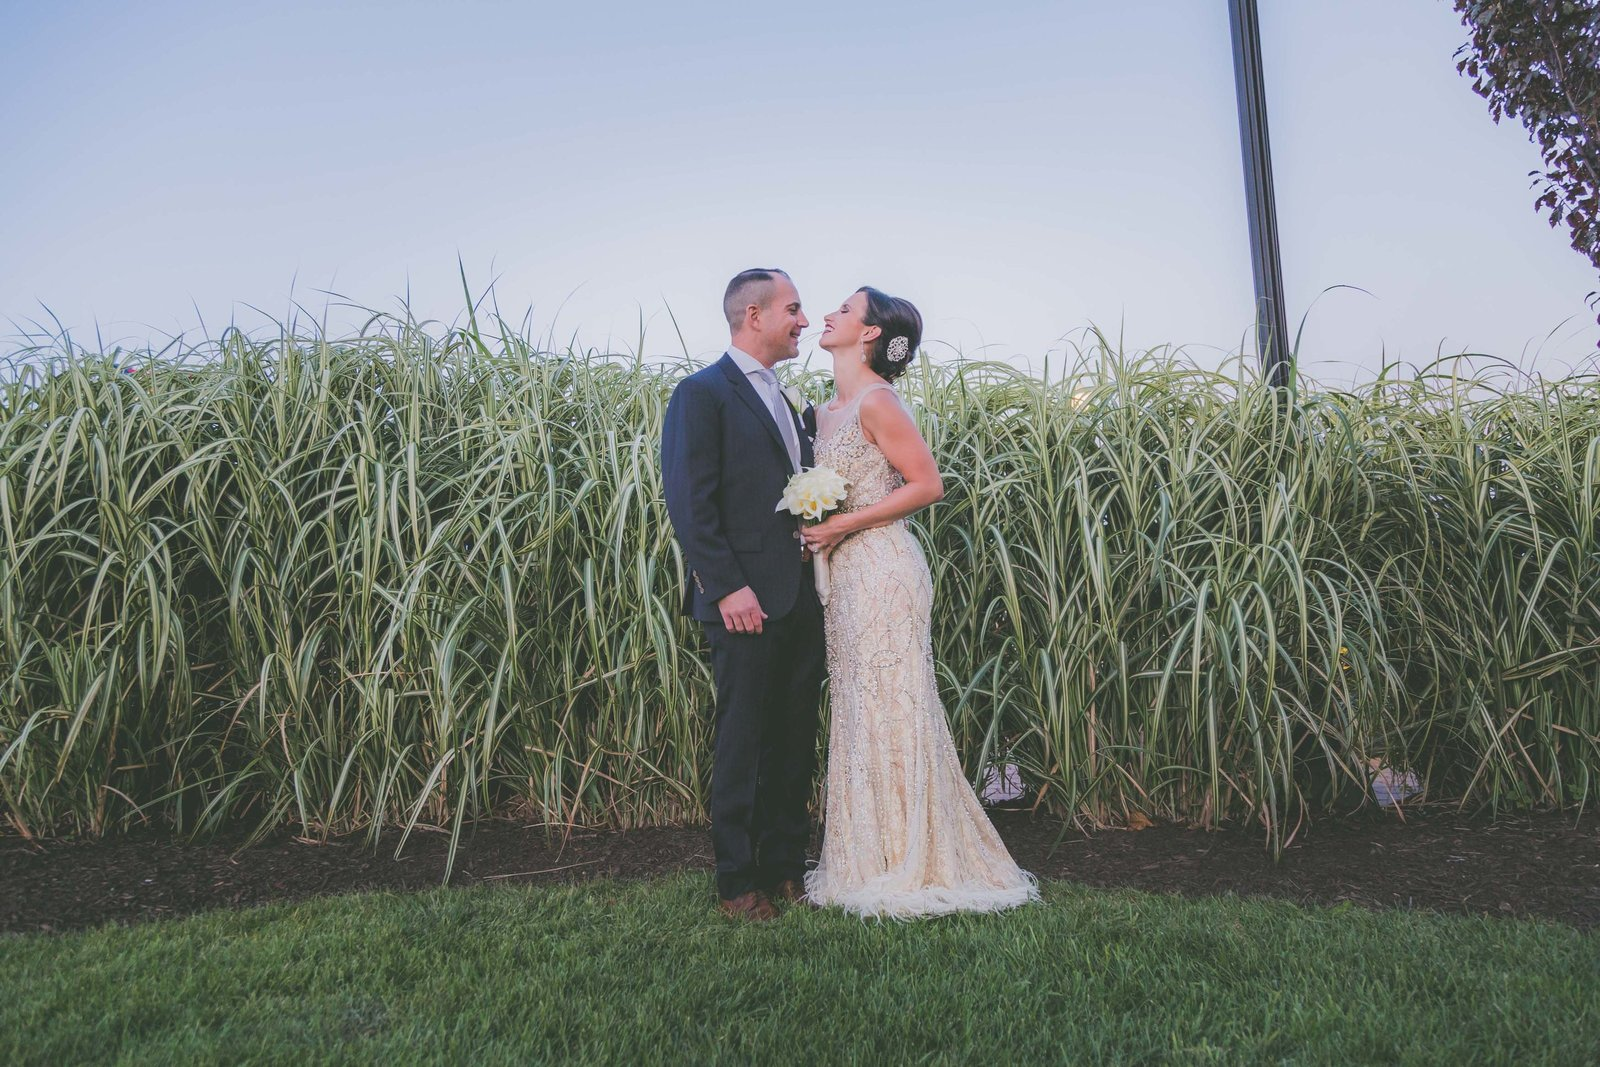 Bride and groom laugh with tall grass in background.